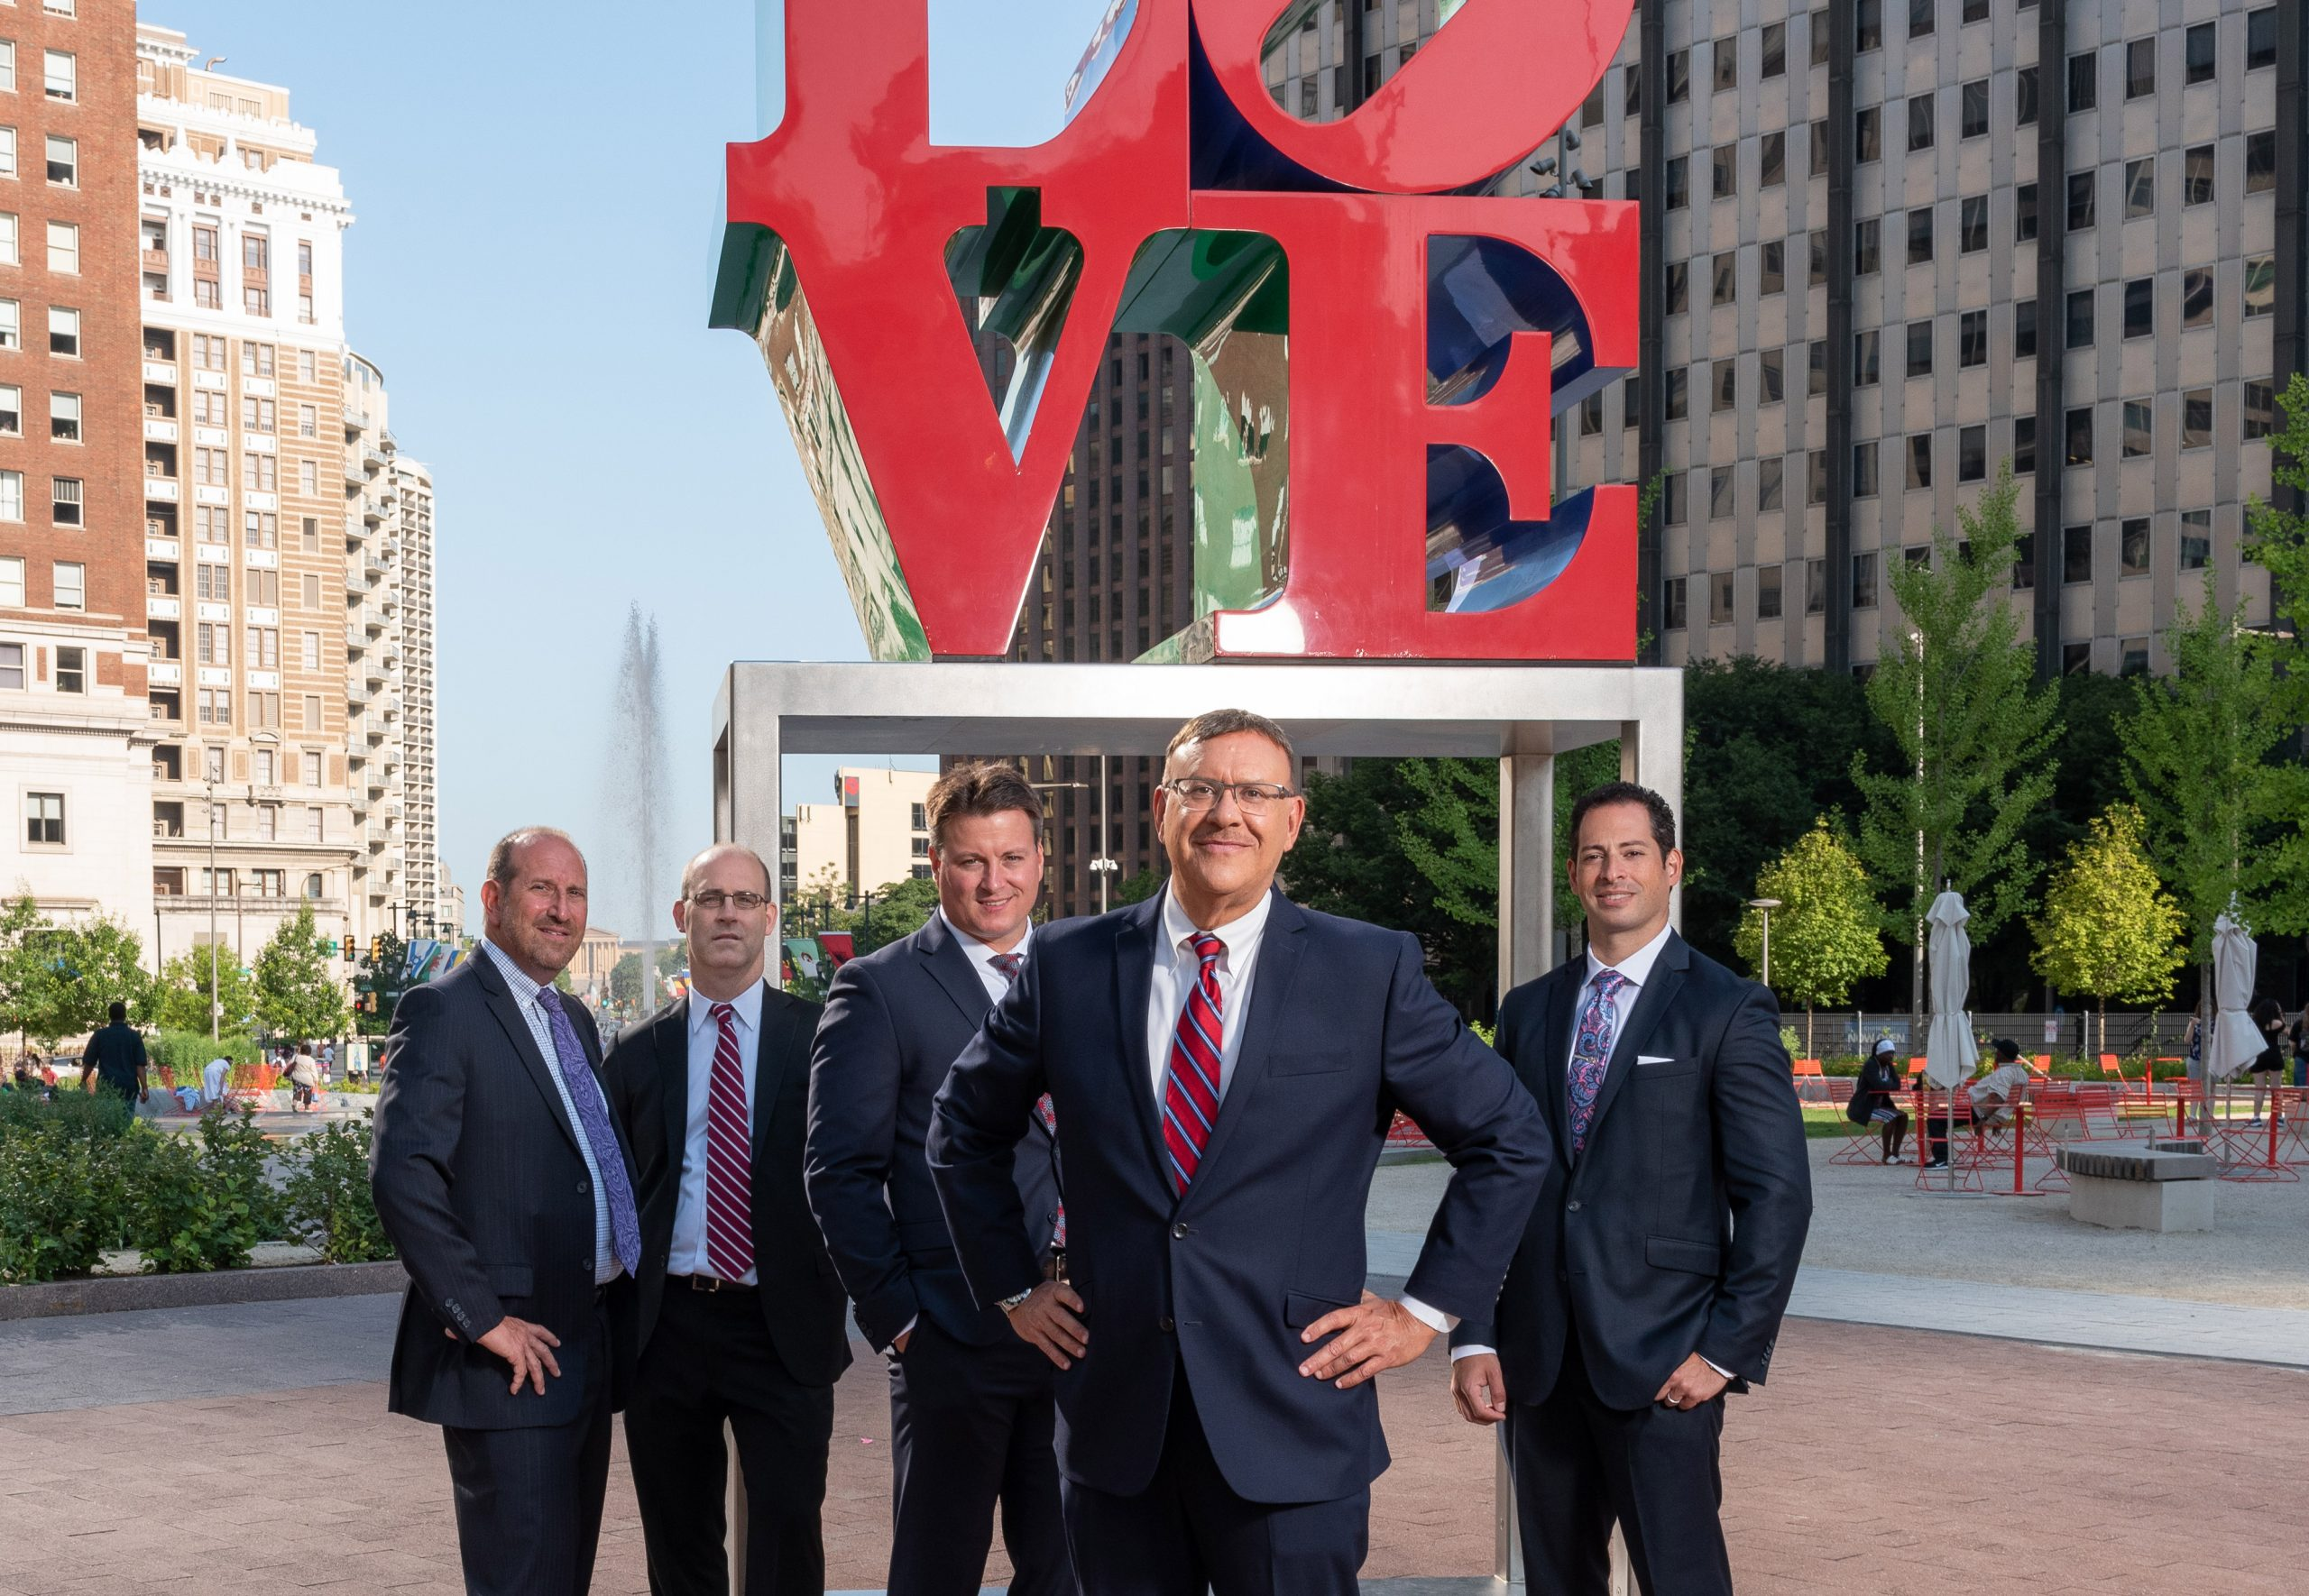 Spear Greenfield Car Accident Attorneys in front of Love Statue in Love Park in Philadelphia